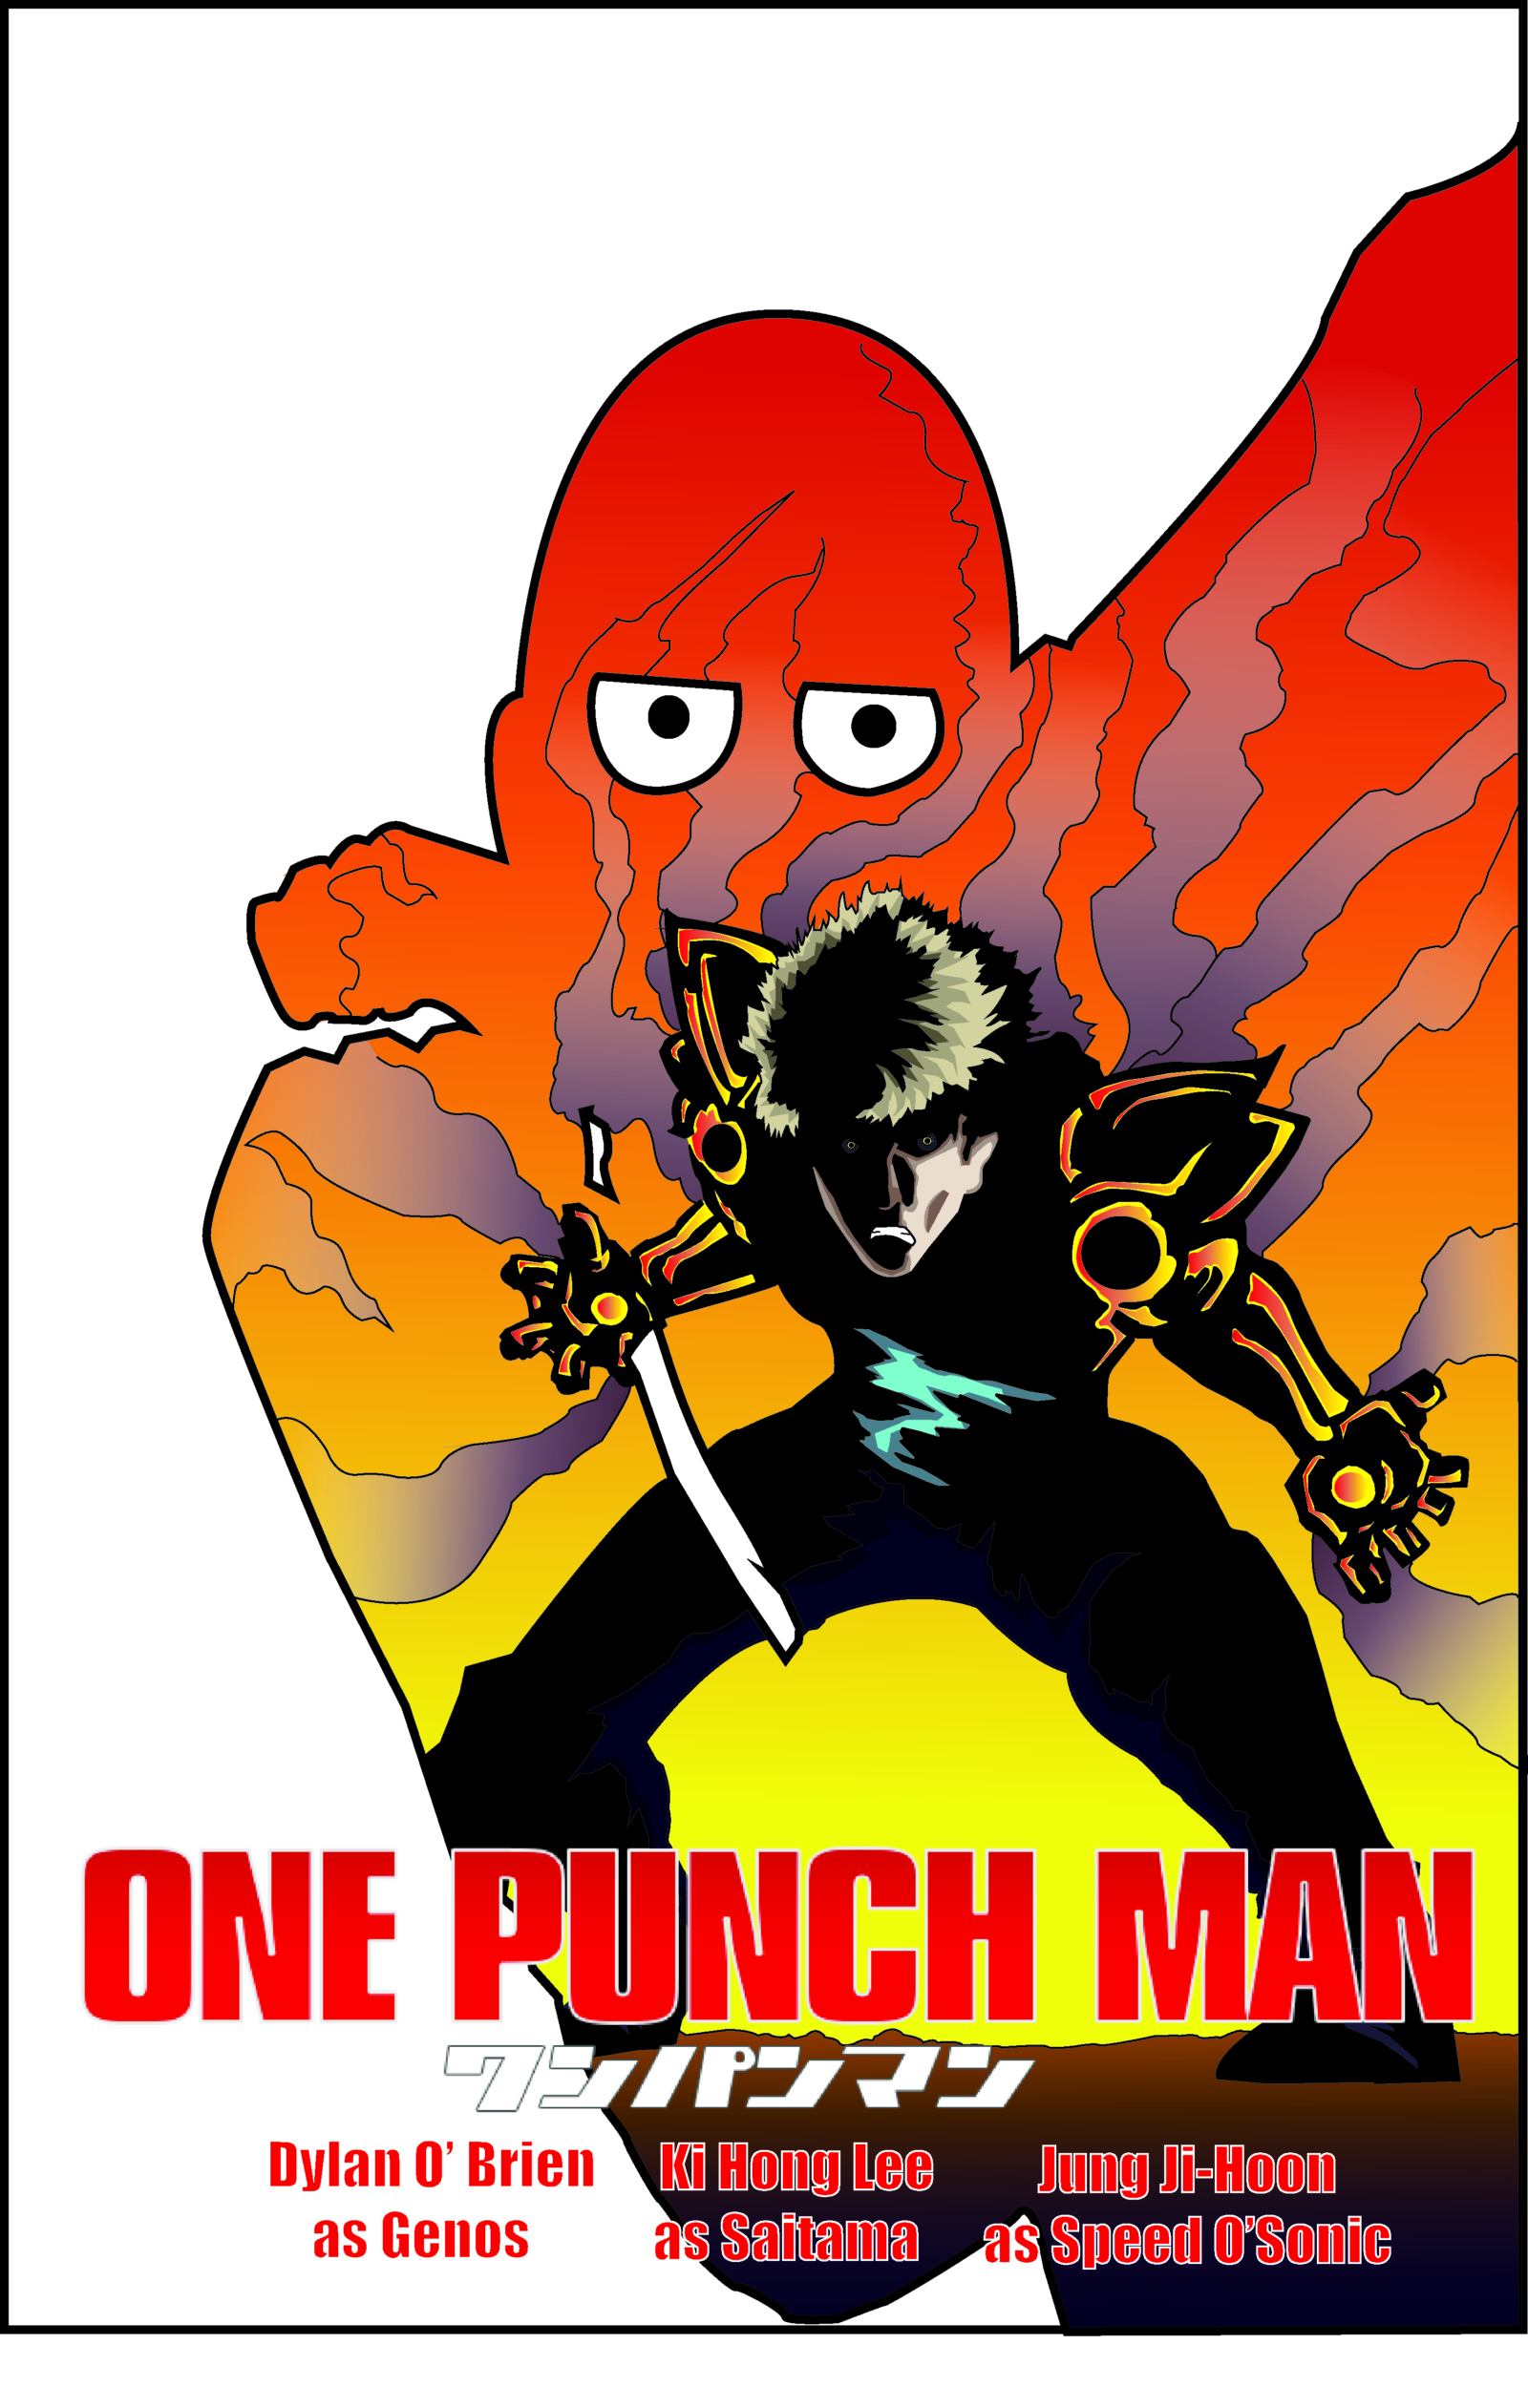 One Punch Man The Movie Posterspy